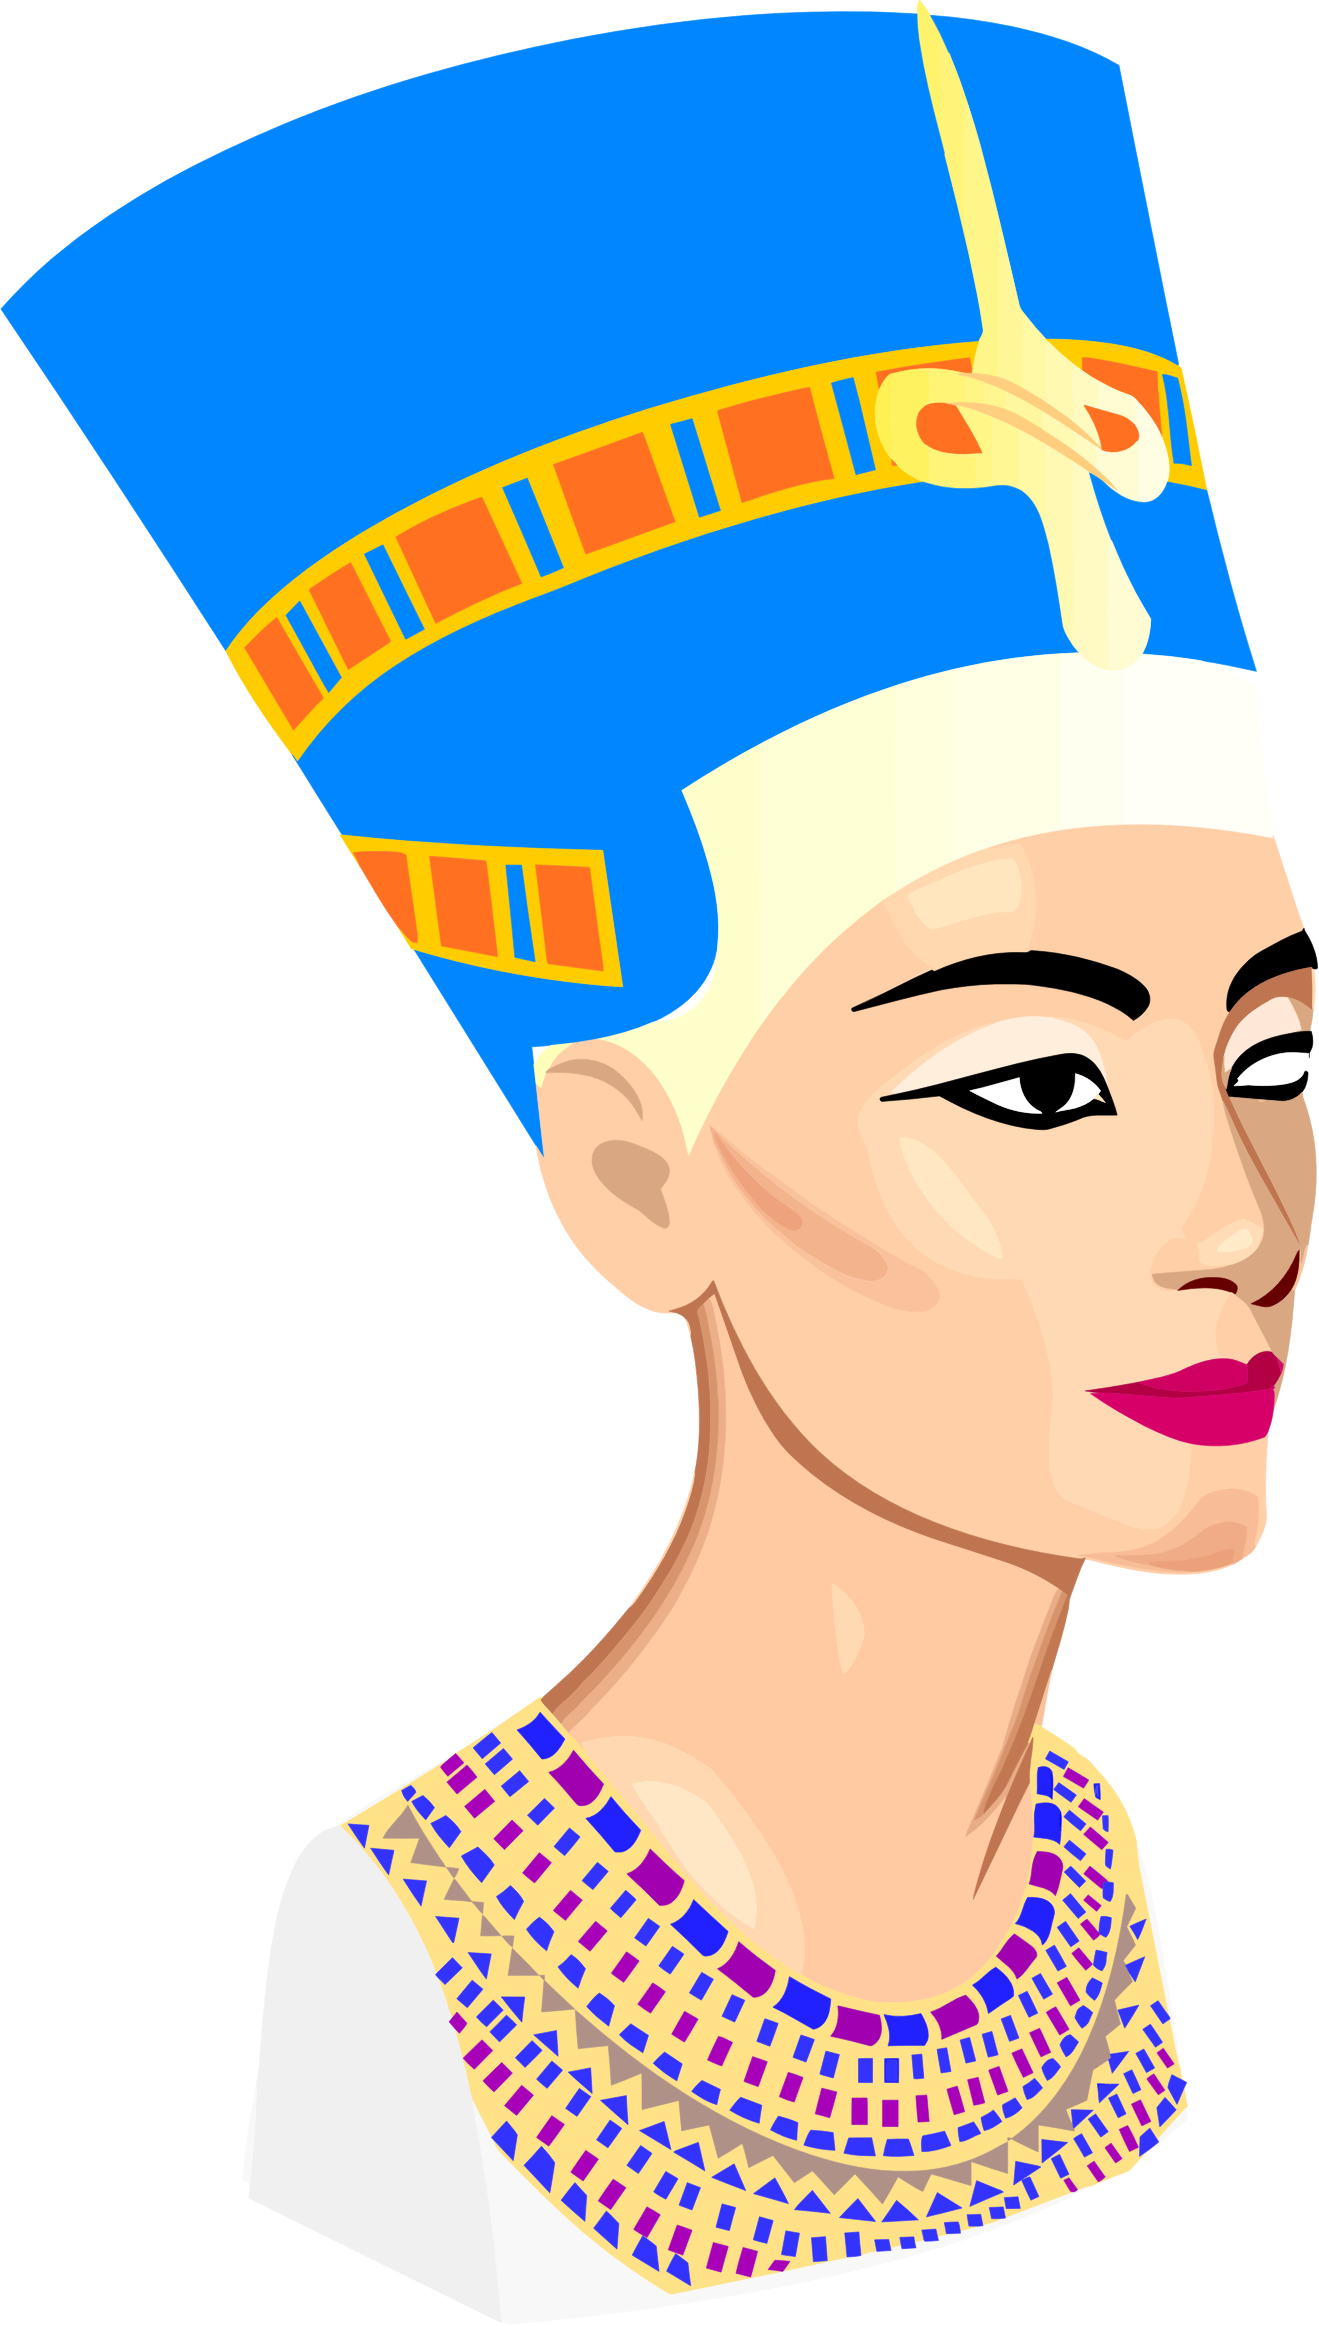 Nefertiti portrait big image. Egyptian clipart africa ancient